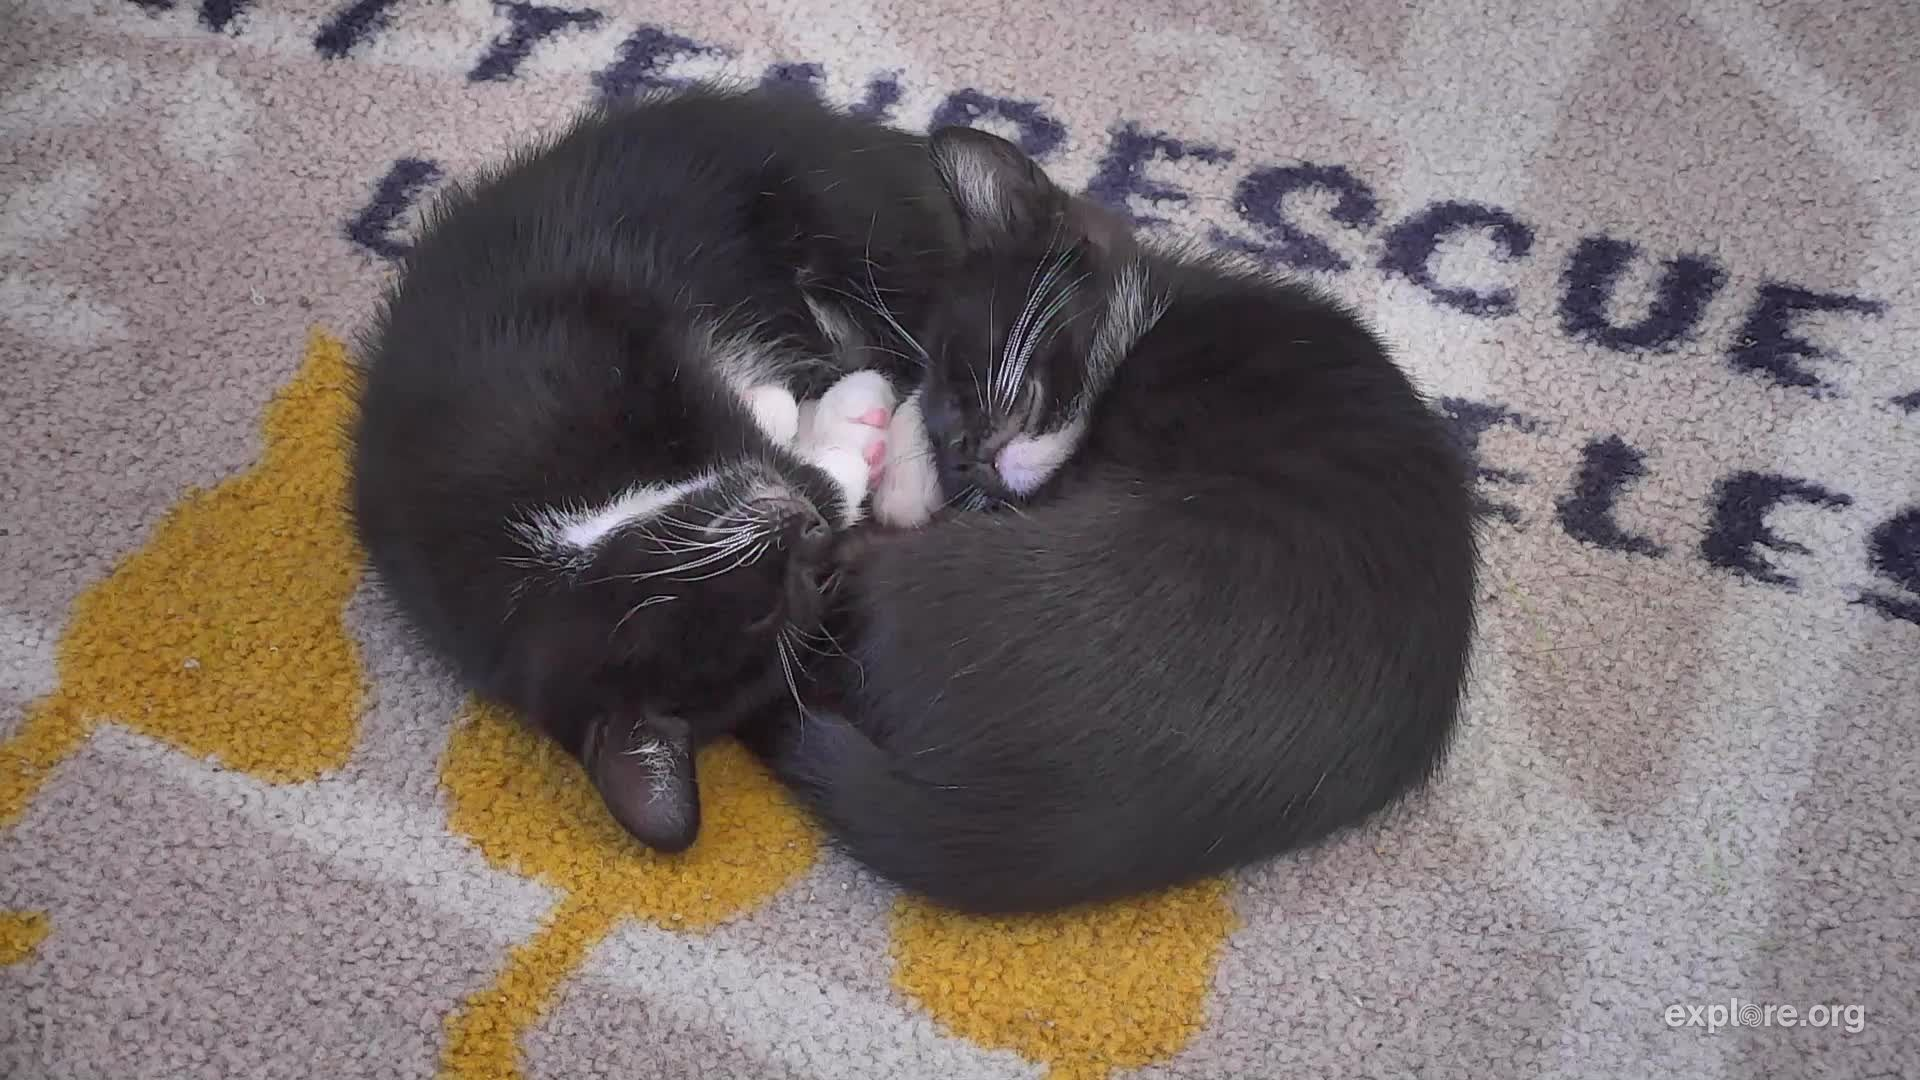 I M Watching The Kittenrescue Cam On Explore Org Streaming Live From Los Angeles Ca Snapshots Cats Animals